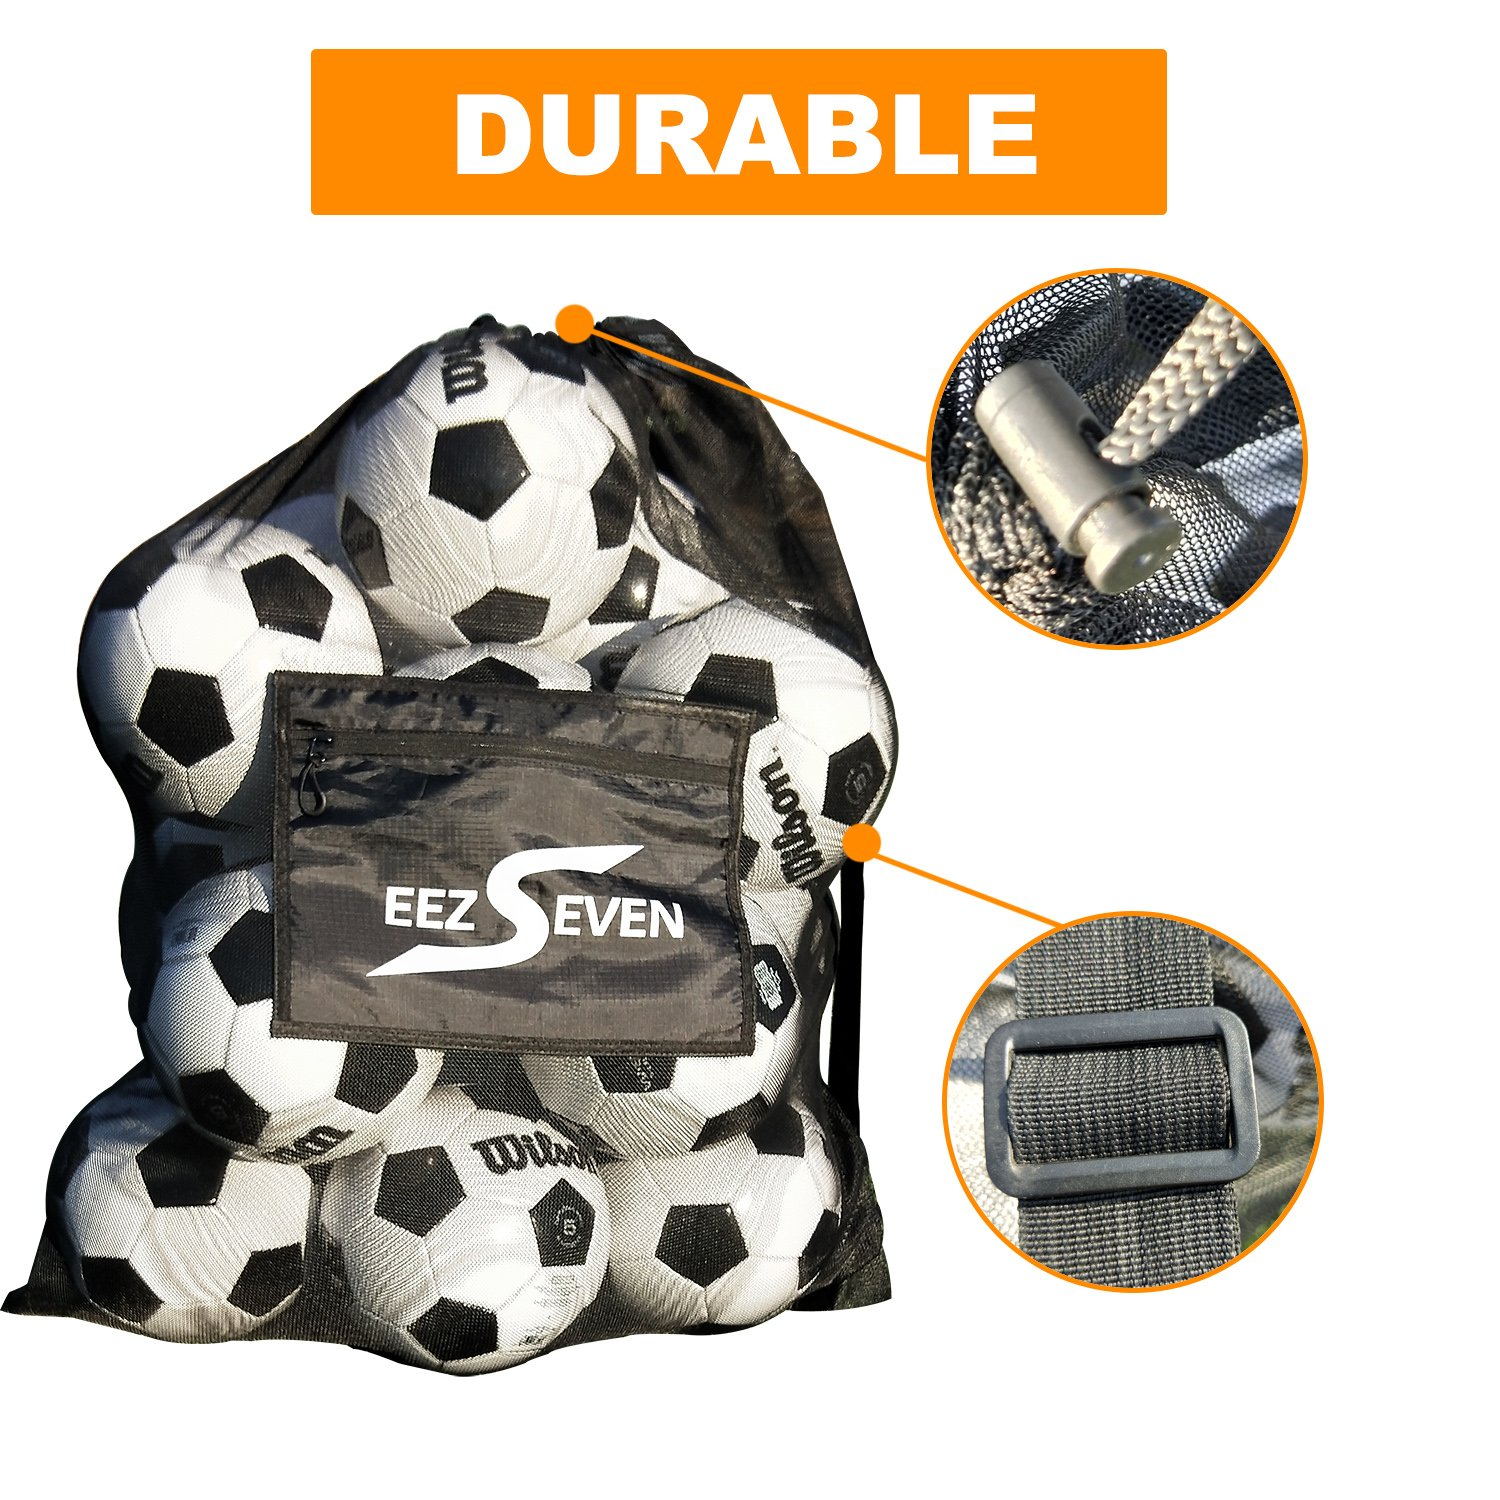 Heavy Duty Extra Large Ball Mesh Bag Soccer Ball Bag Equipment Bag For Sports Beach and Swimming Gears. Adjustable Shoulder Strap For Adults and Kids. Side Pocket for Your Personal Item 30 x 40 Inches by EEZSEVEN (Image #3)